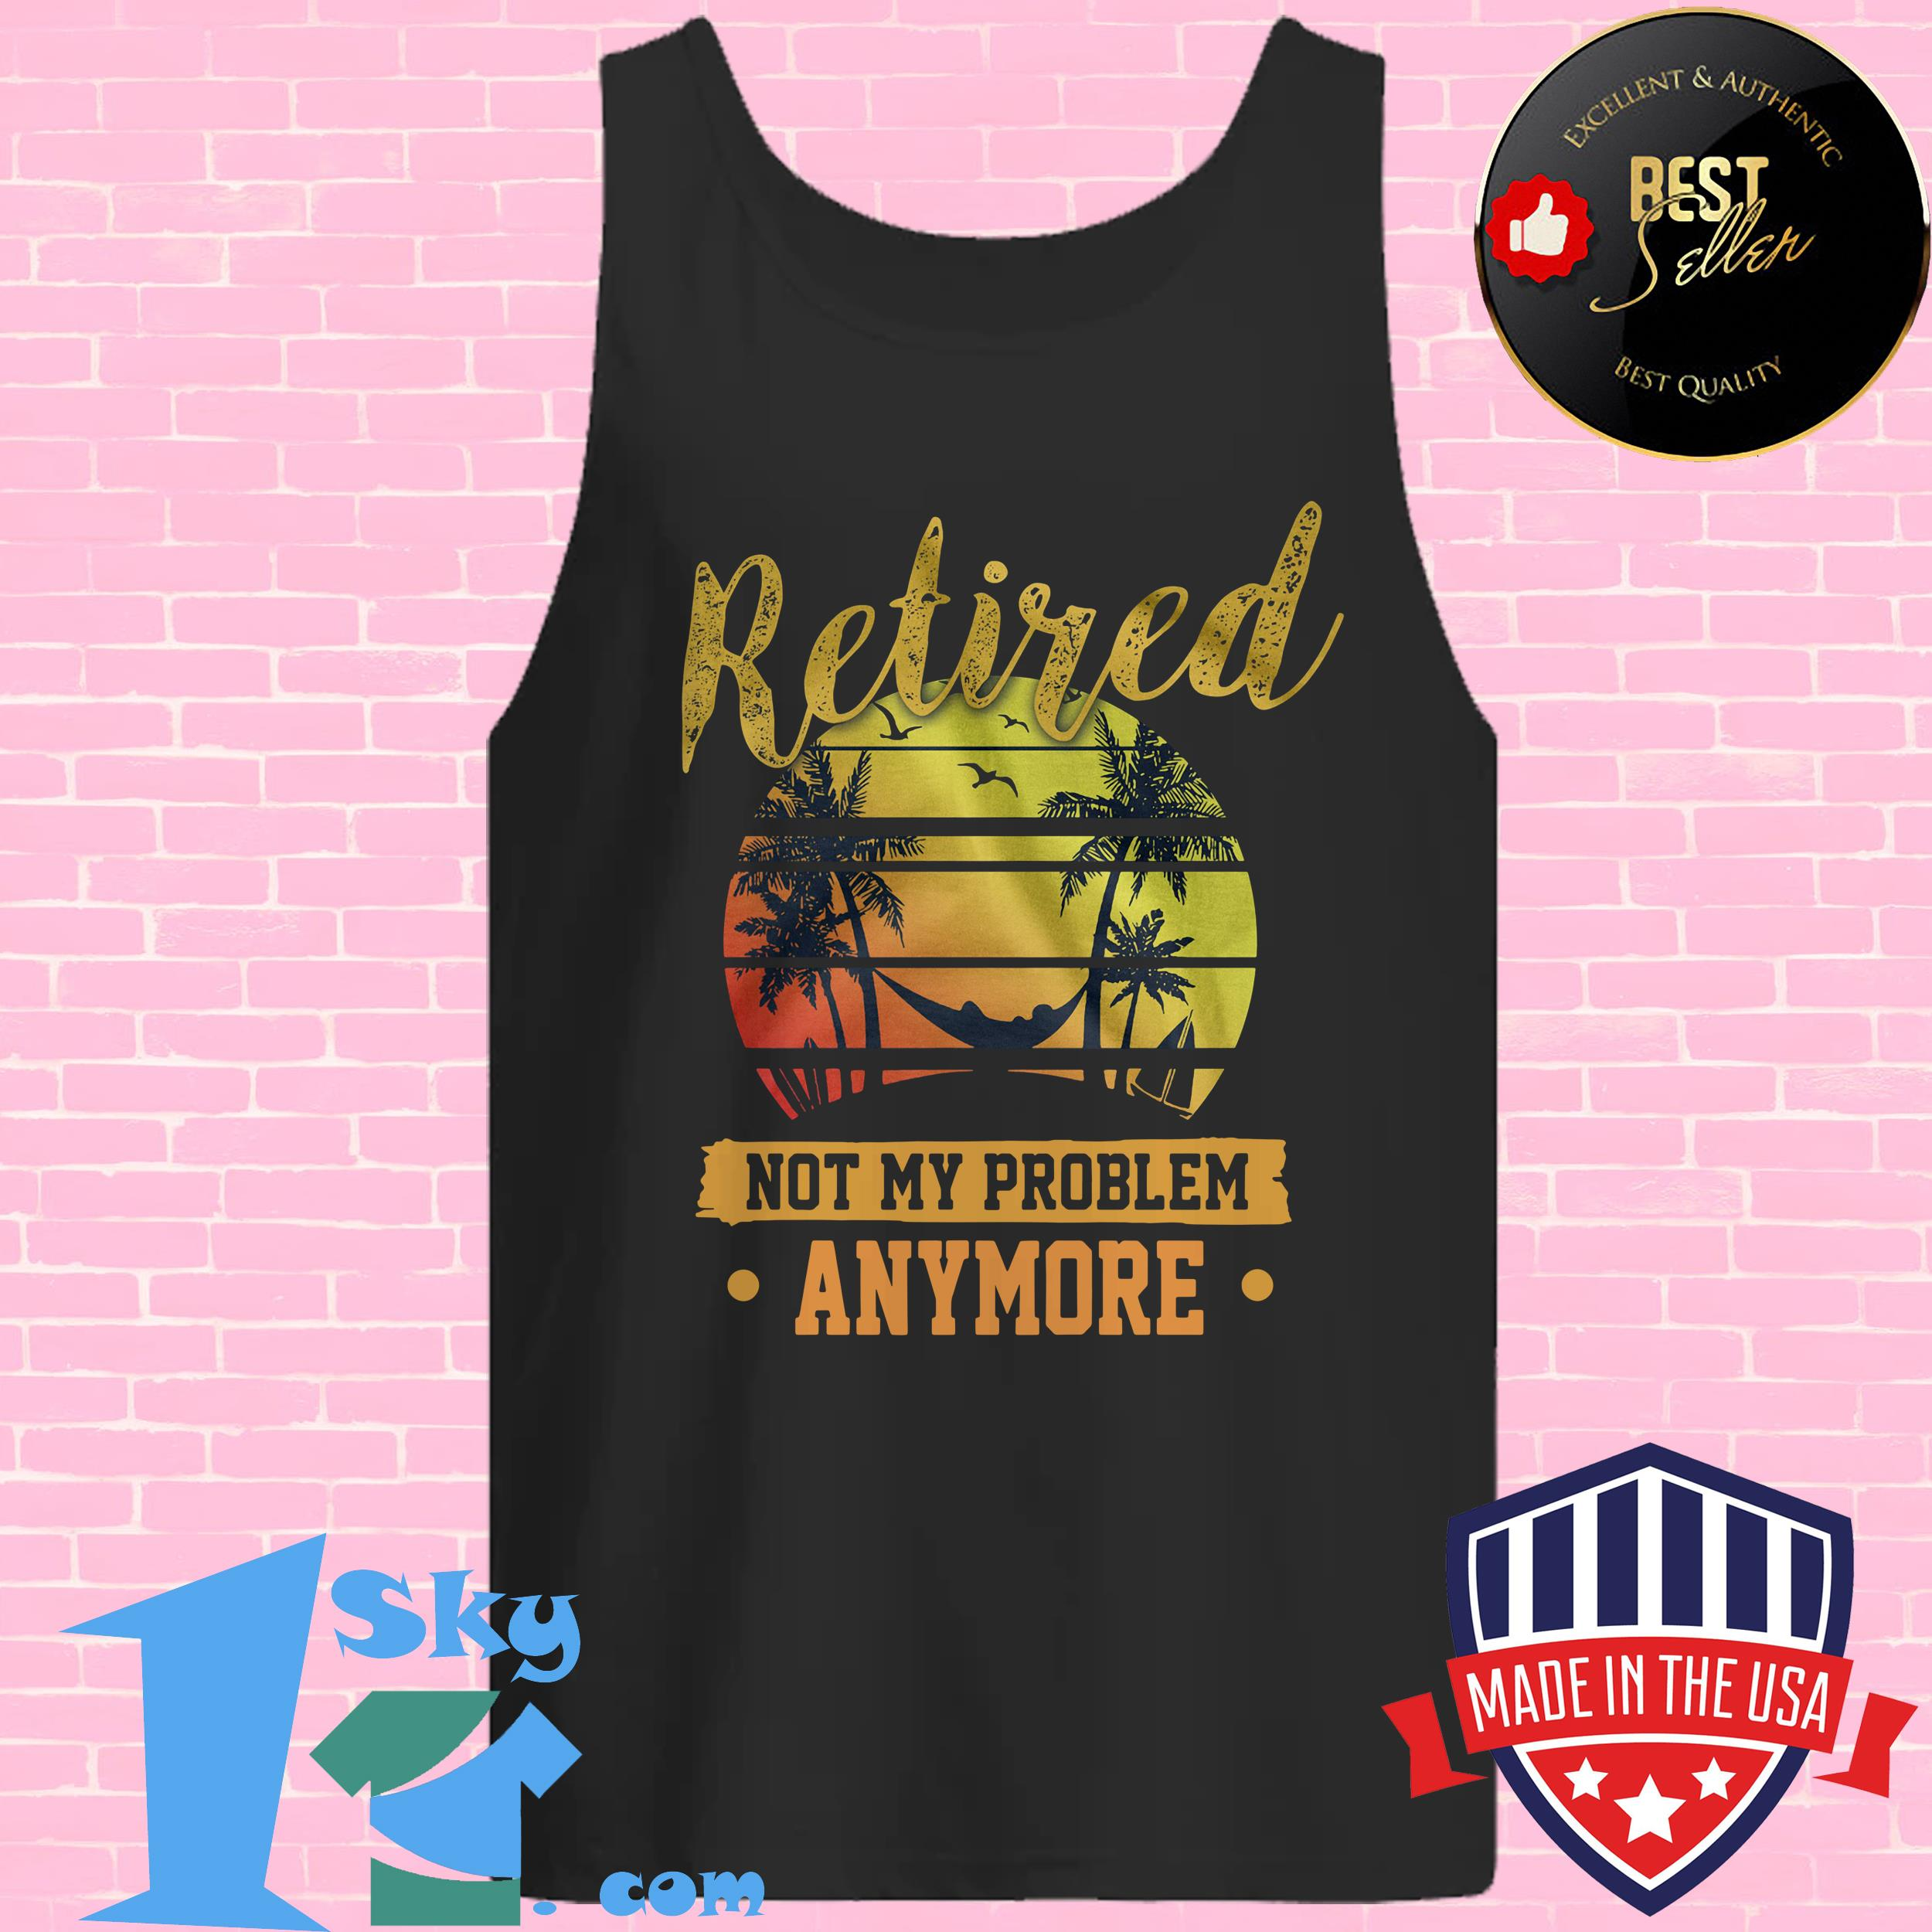 retired not my problem anymore vintage tank top - Retired Not My Problem Anymore Vintage shirt